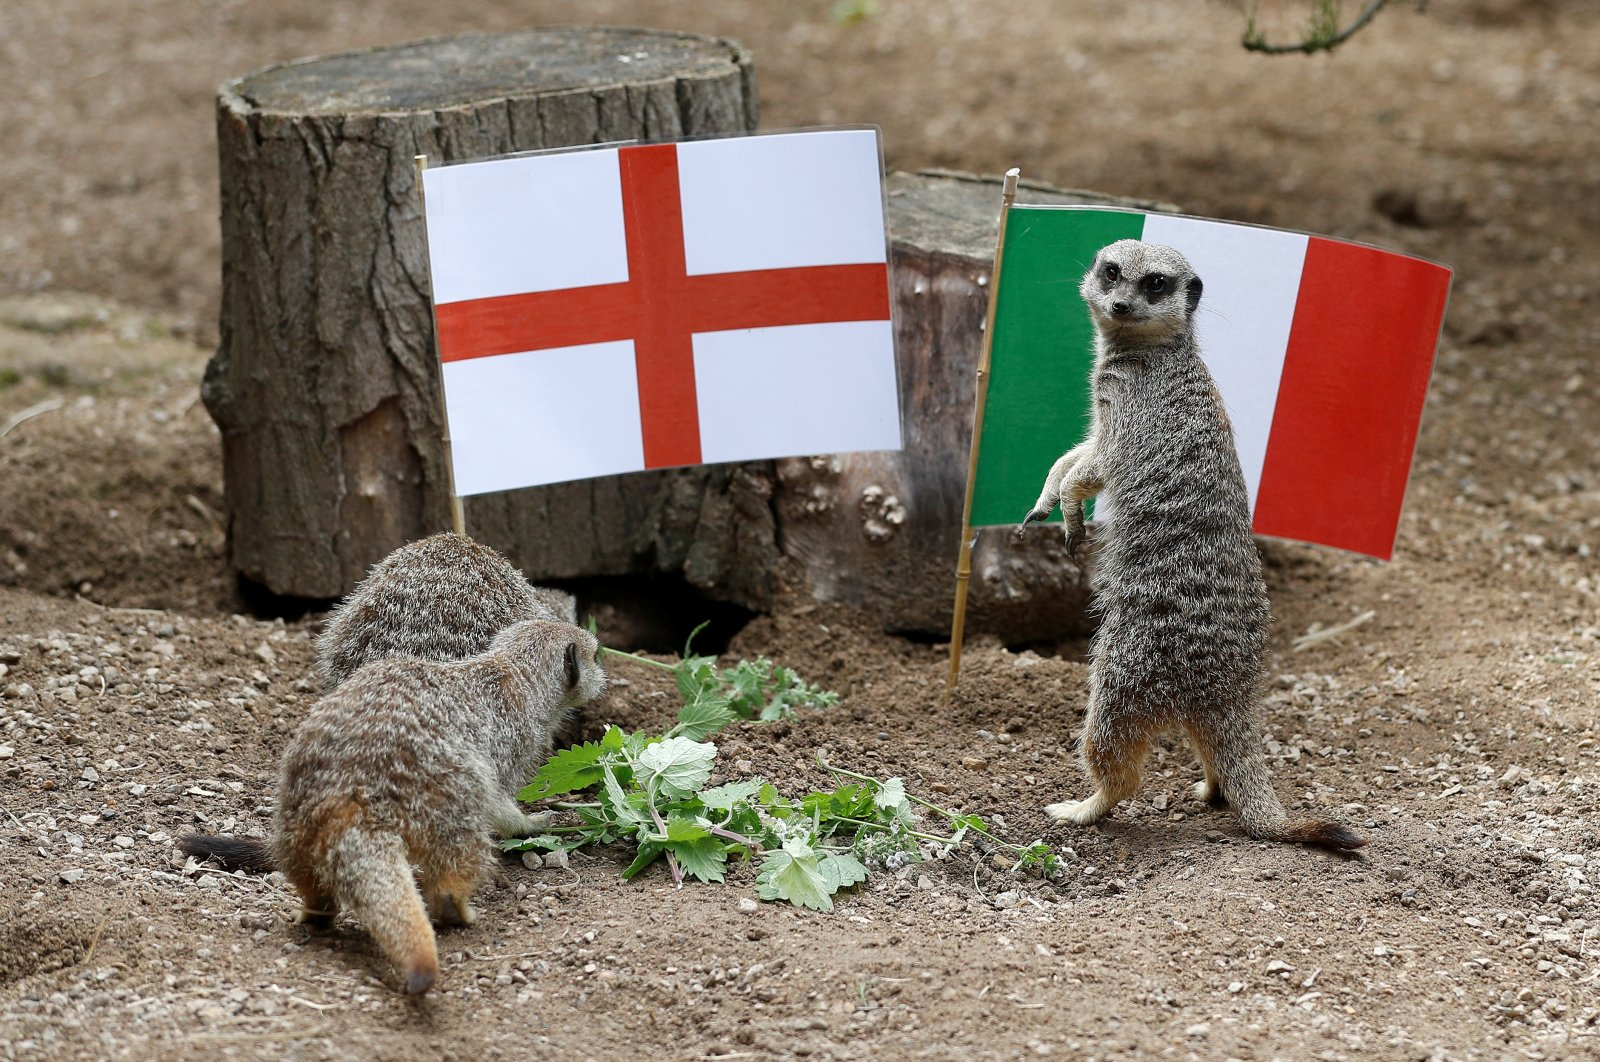 Meerkats play alongside England and Italy flags ahead of the Euro 2020 final, at ZSL London Zoo, London, England, July 8, 2021. (Reuters Photo)